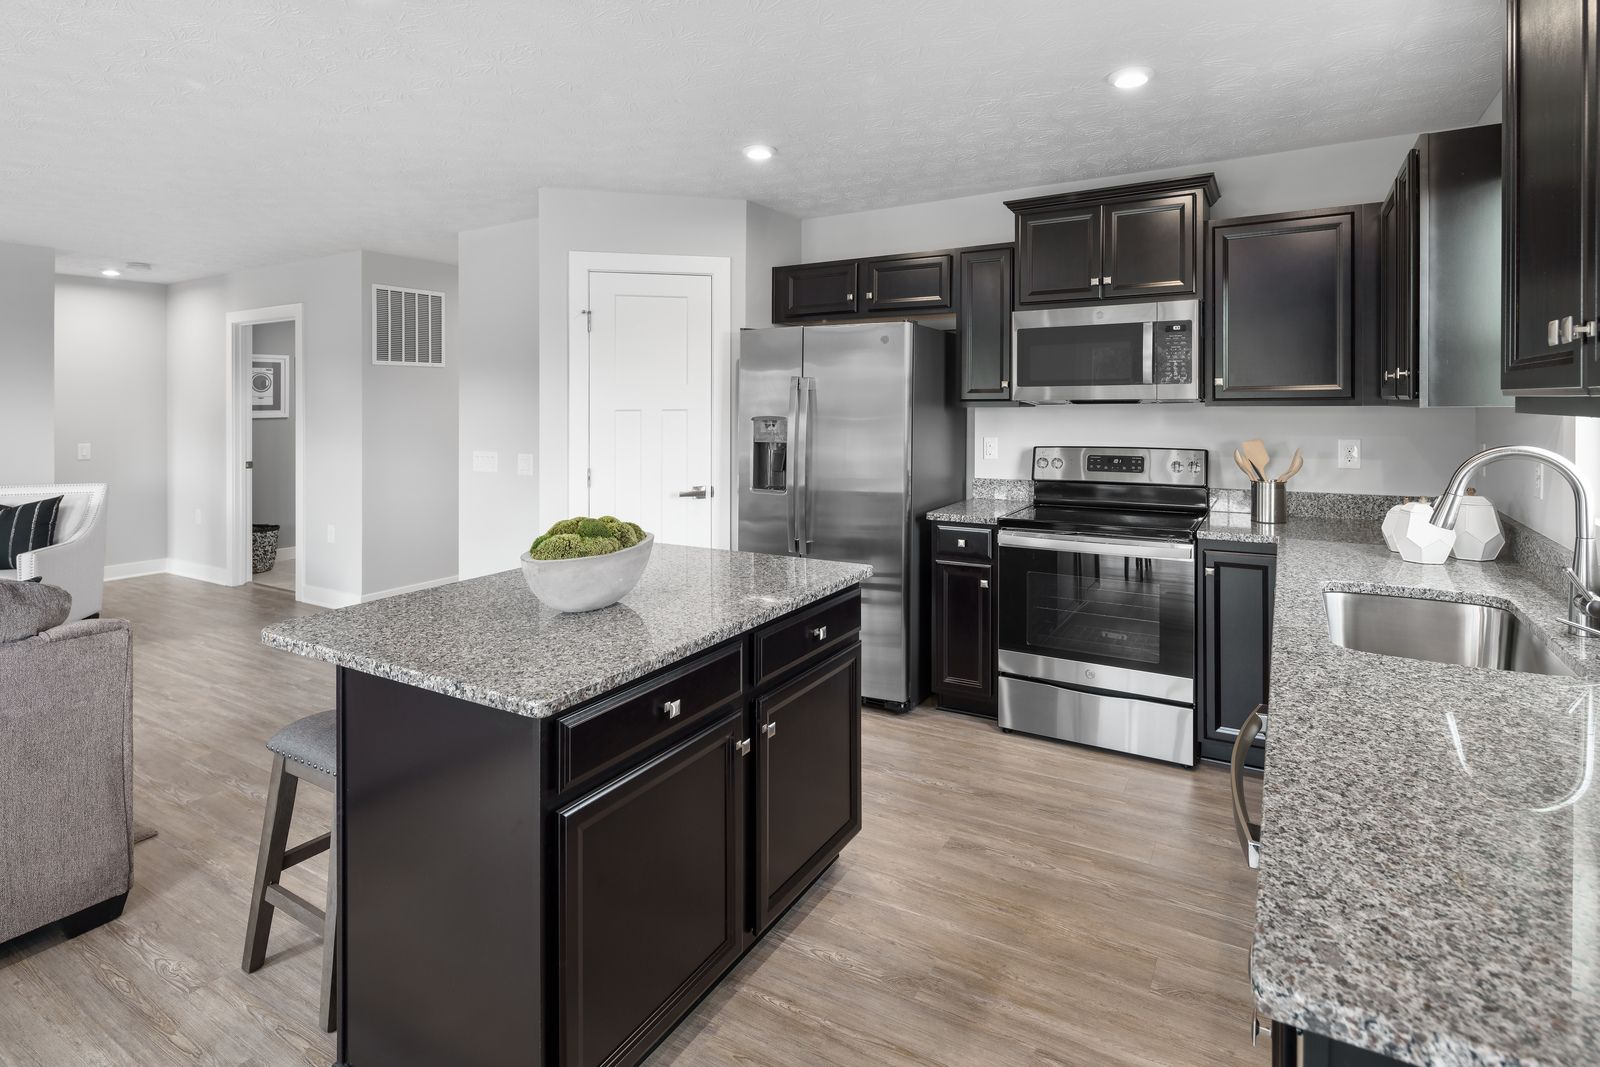 Kitchen featured in the Grand Bahama By Ryan Homes in Dover, DE